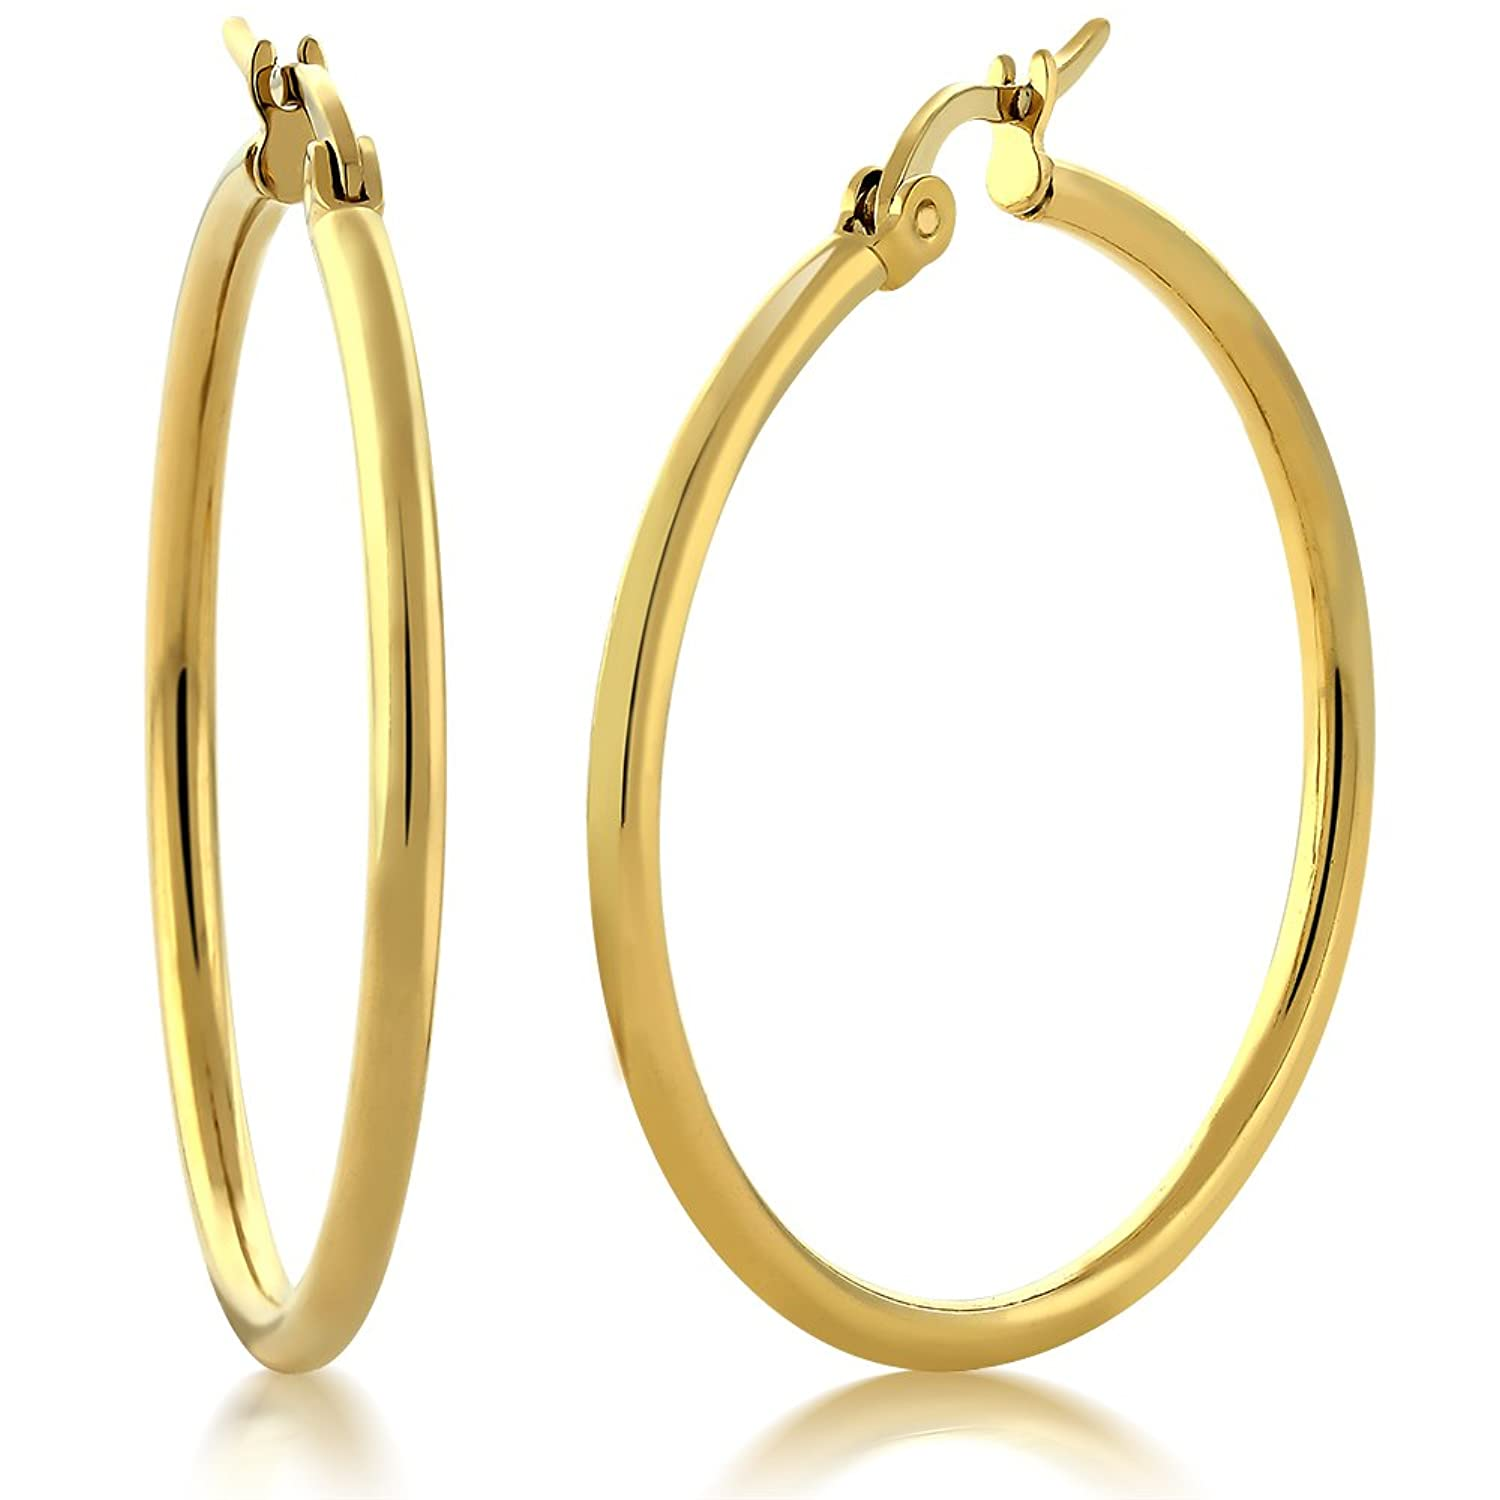 collections gold rose products jewellery rosehoop blake fetneh earrings hoop jewelry